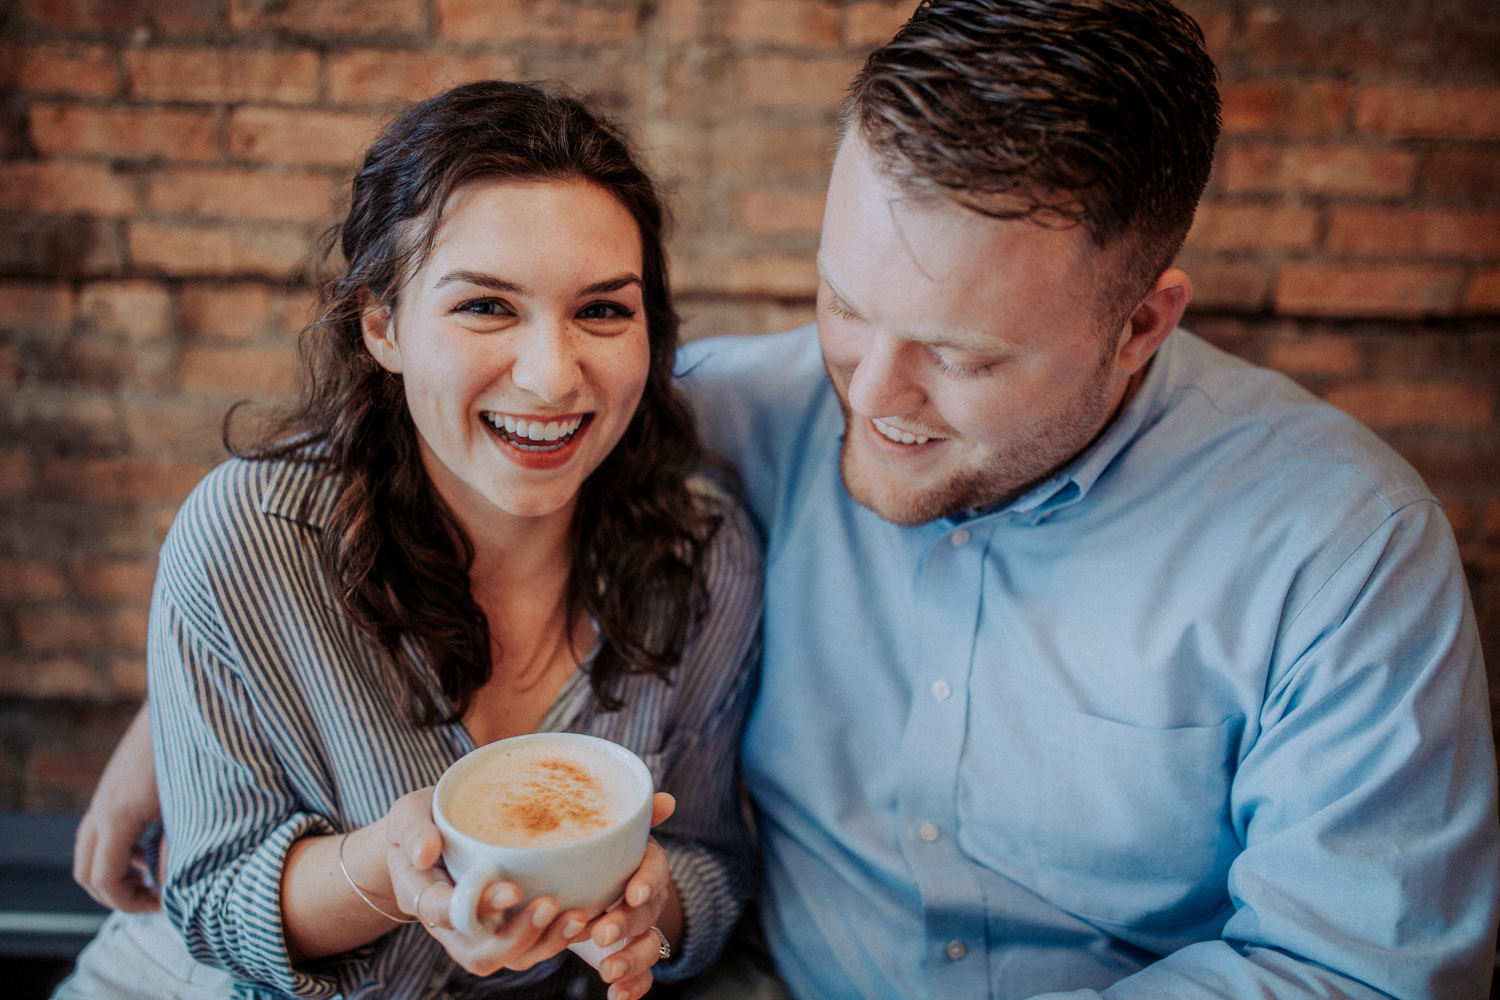 Bryden Giving Photographer-Wedding Photographer-Minneapolis-Minnesota-Saint Paul-Lifestyle-Twin Cities-Engagement Session-Destination Wedding Photographer